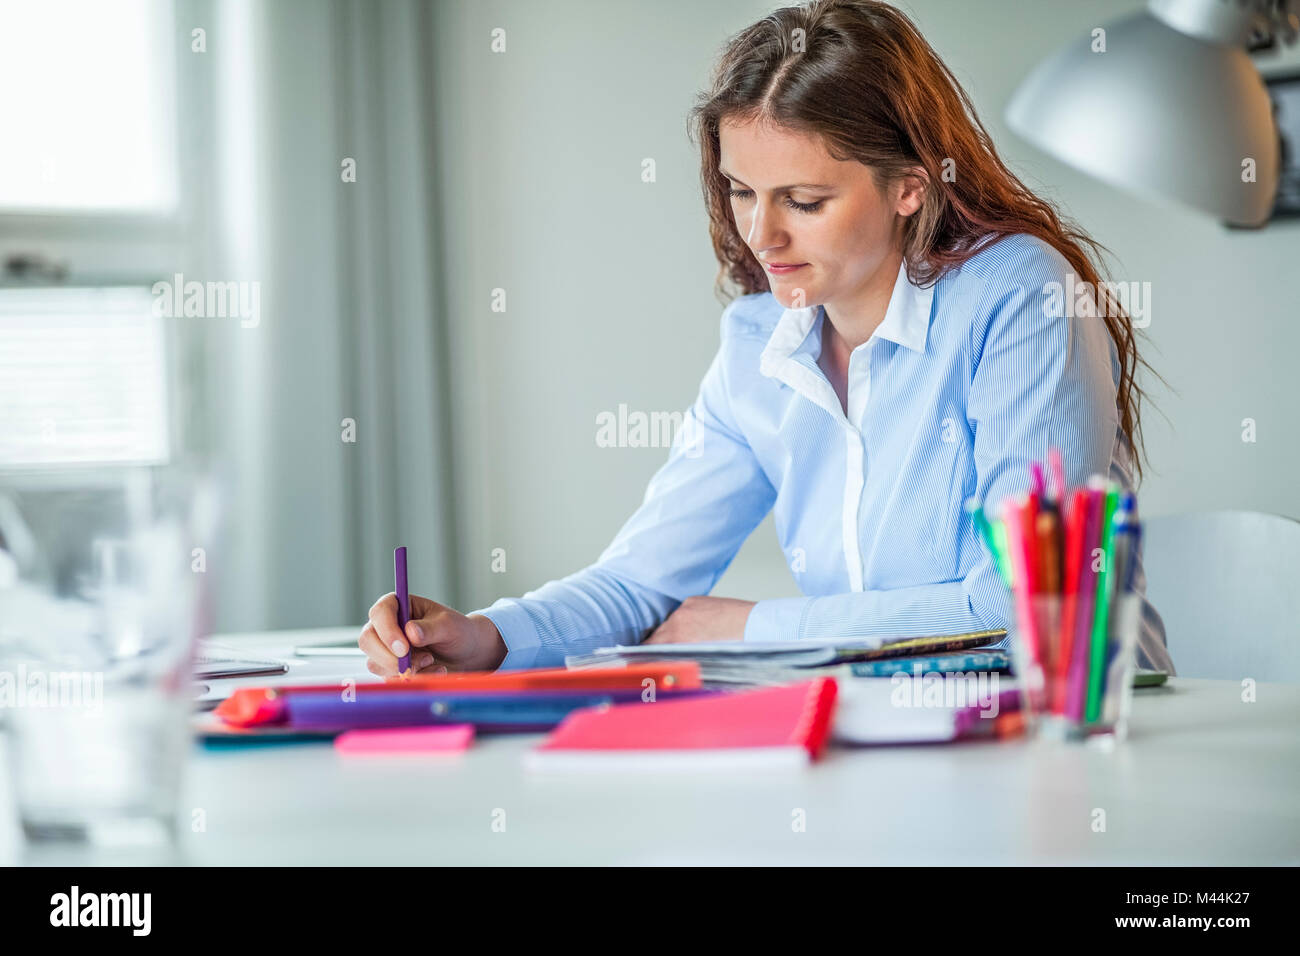 Young female fashion designer working at desk in office - Stock Image